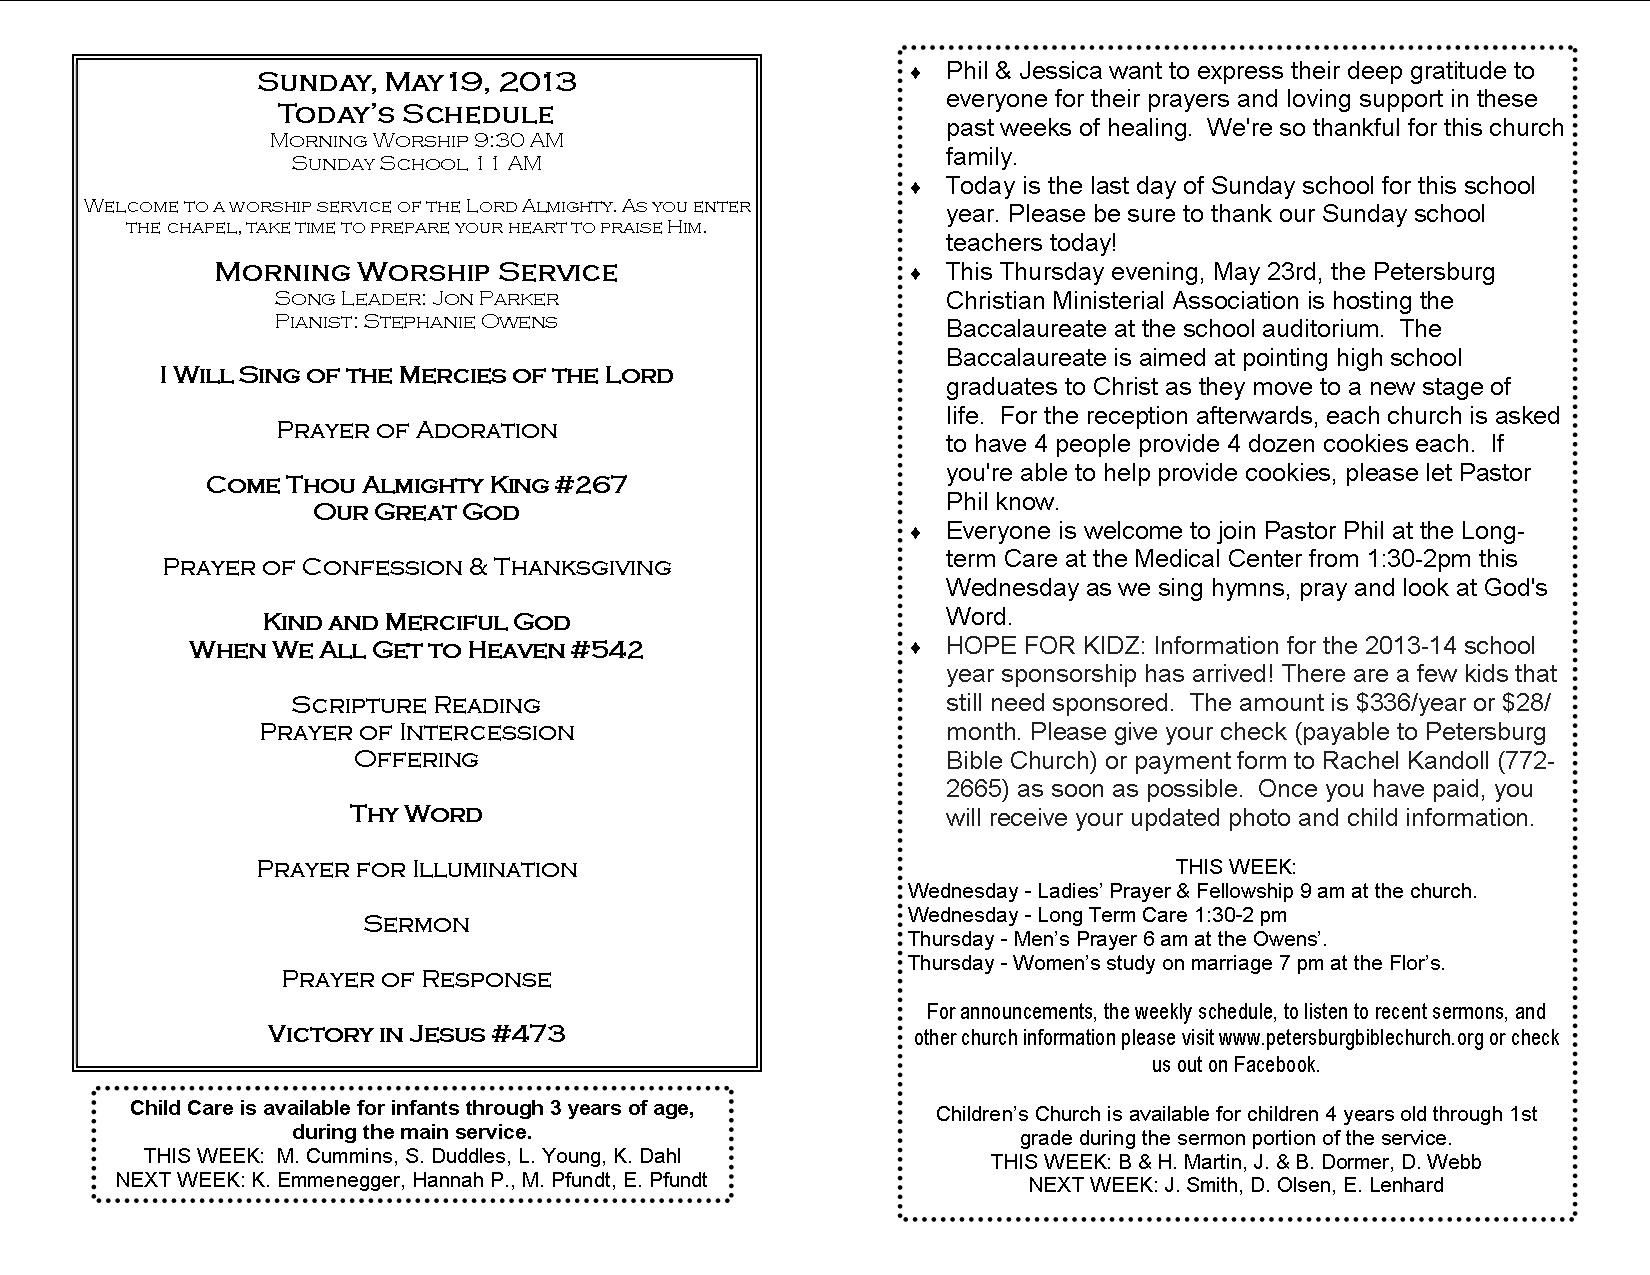 Church Bulletin Fillers And Quotes Quotesgram By Quotesgram